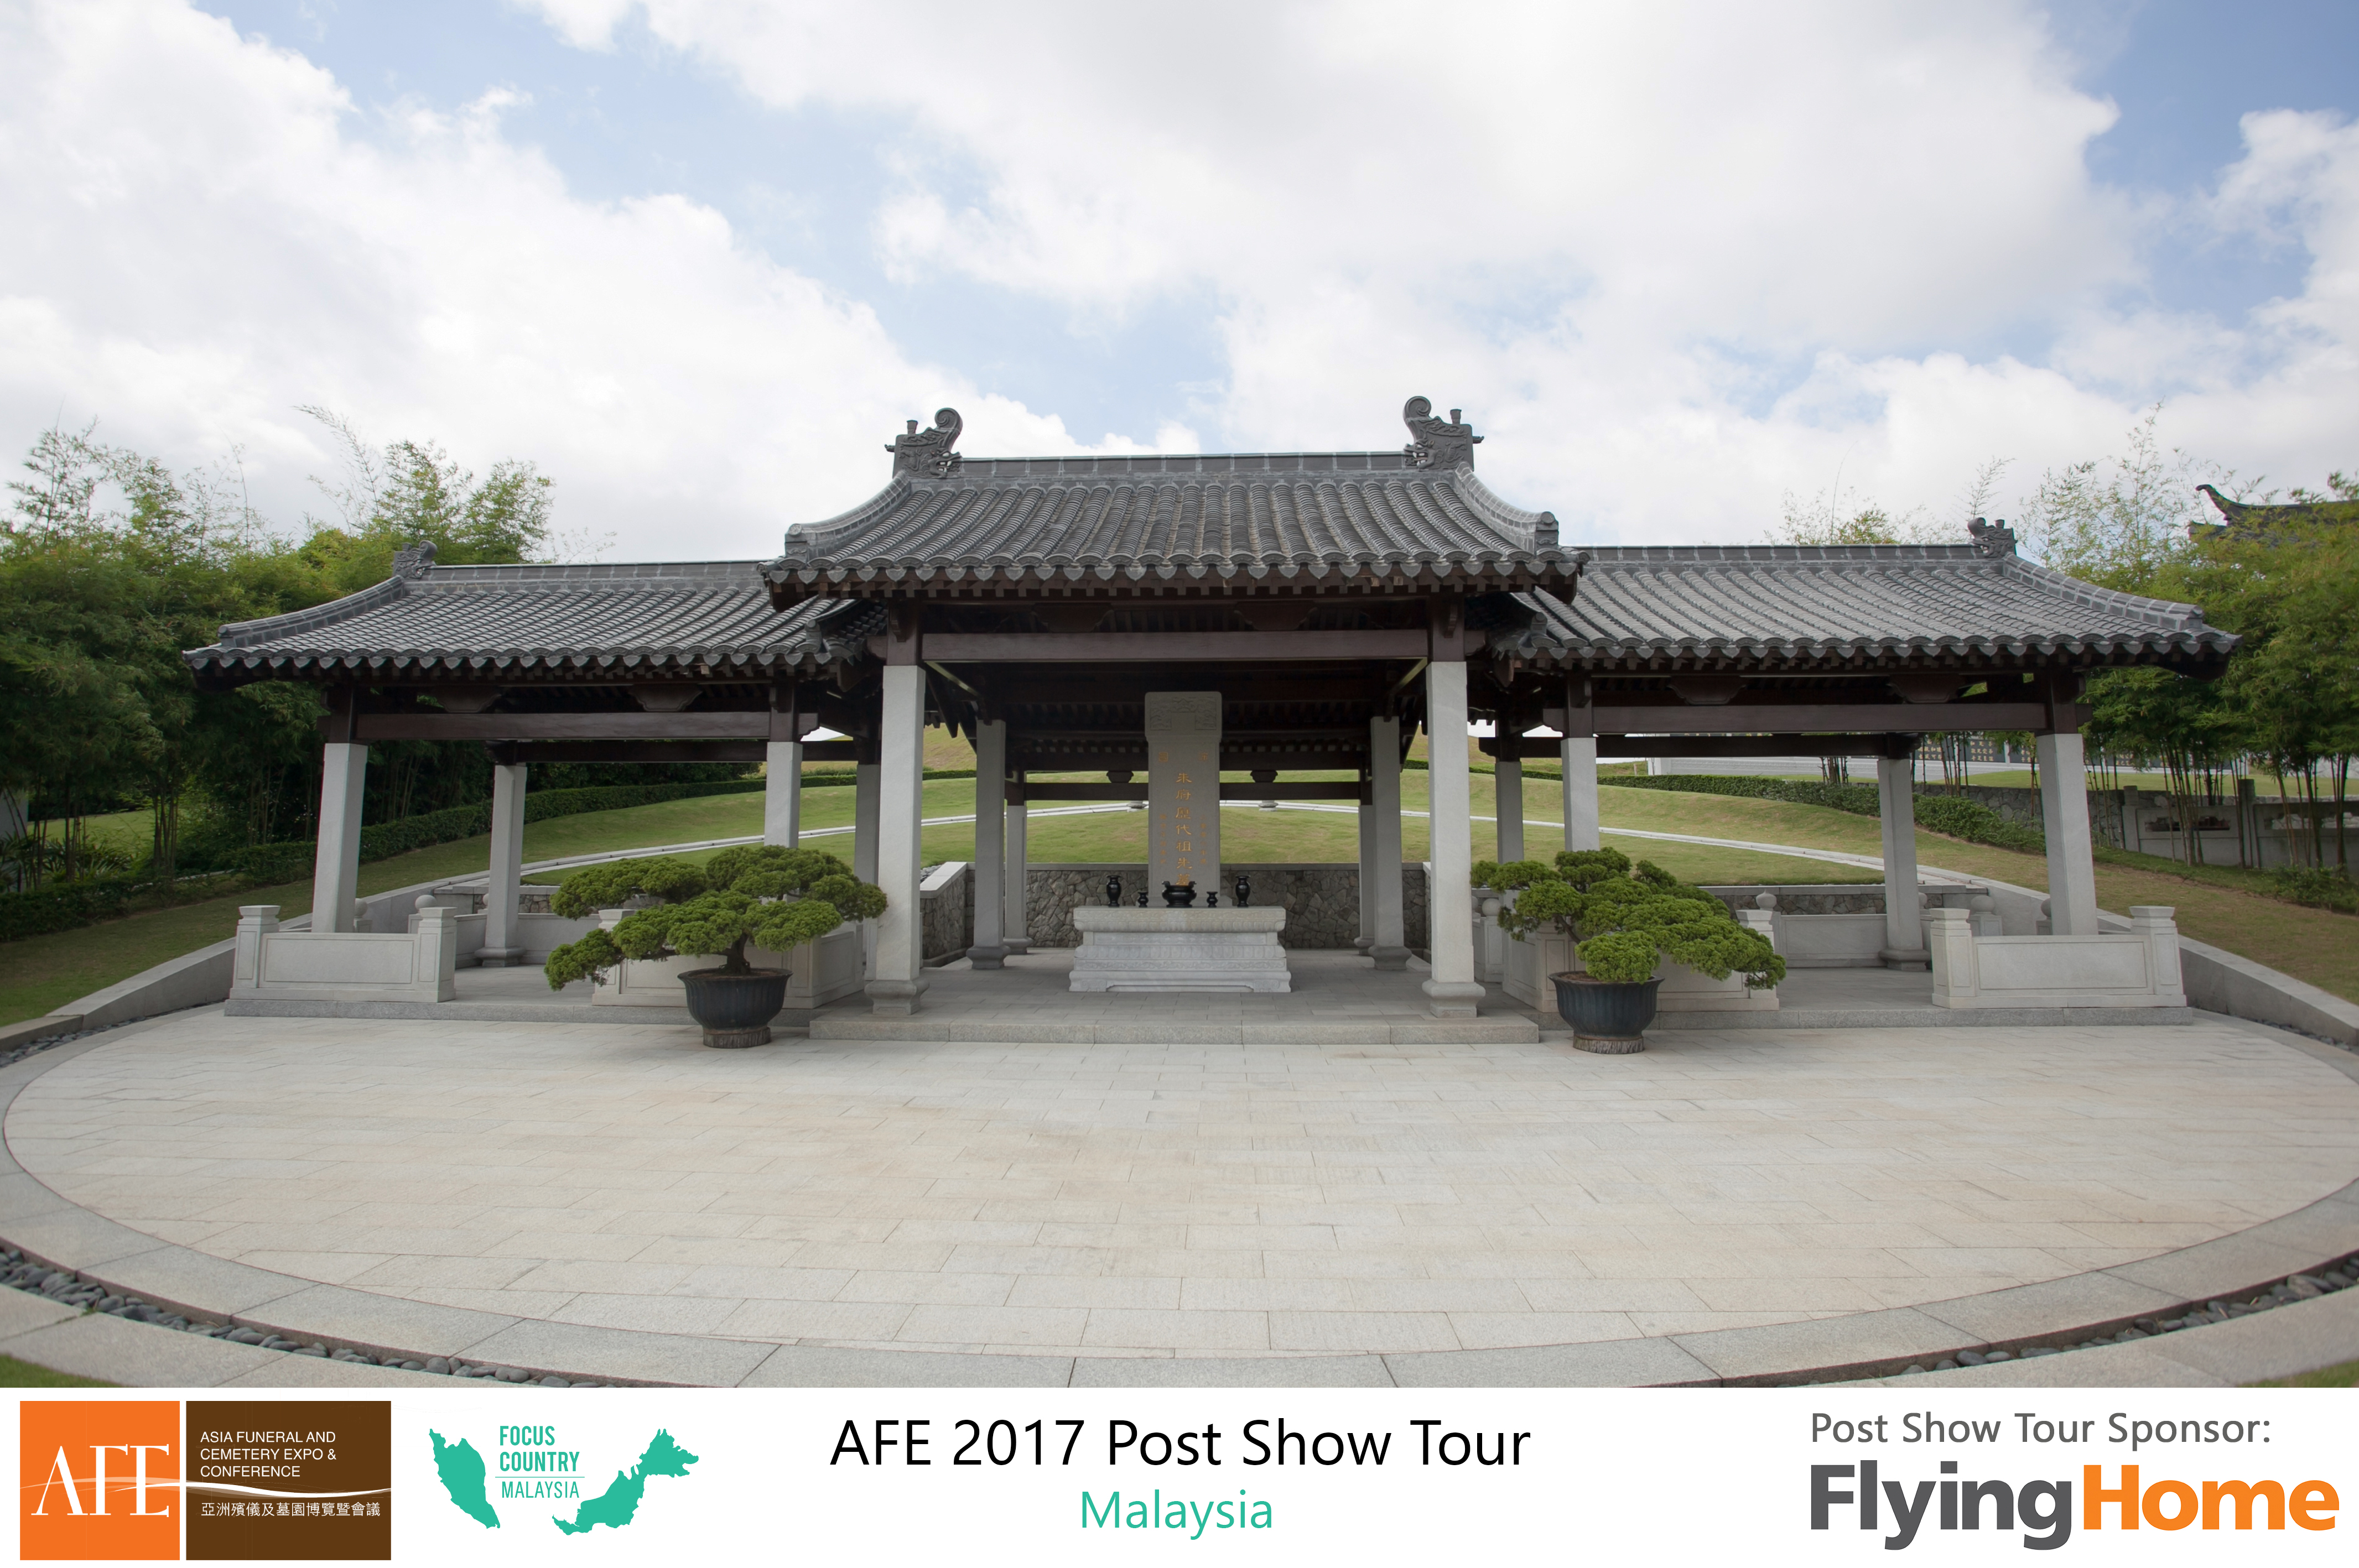 AFE Post Show Tour 2017 Day 3 -15